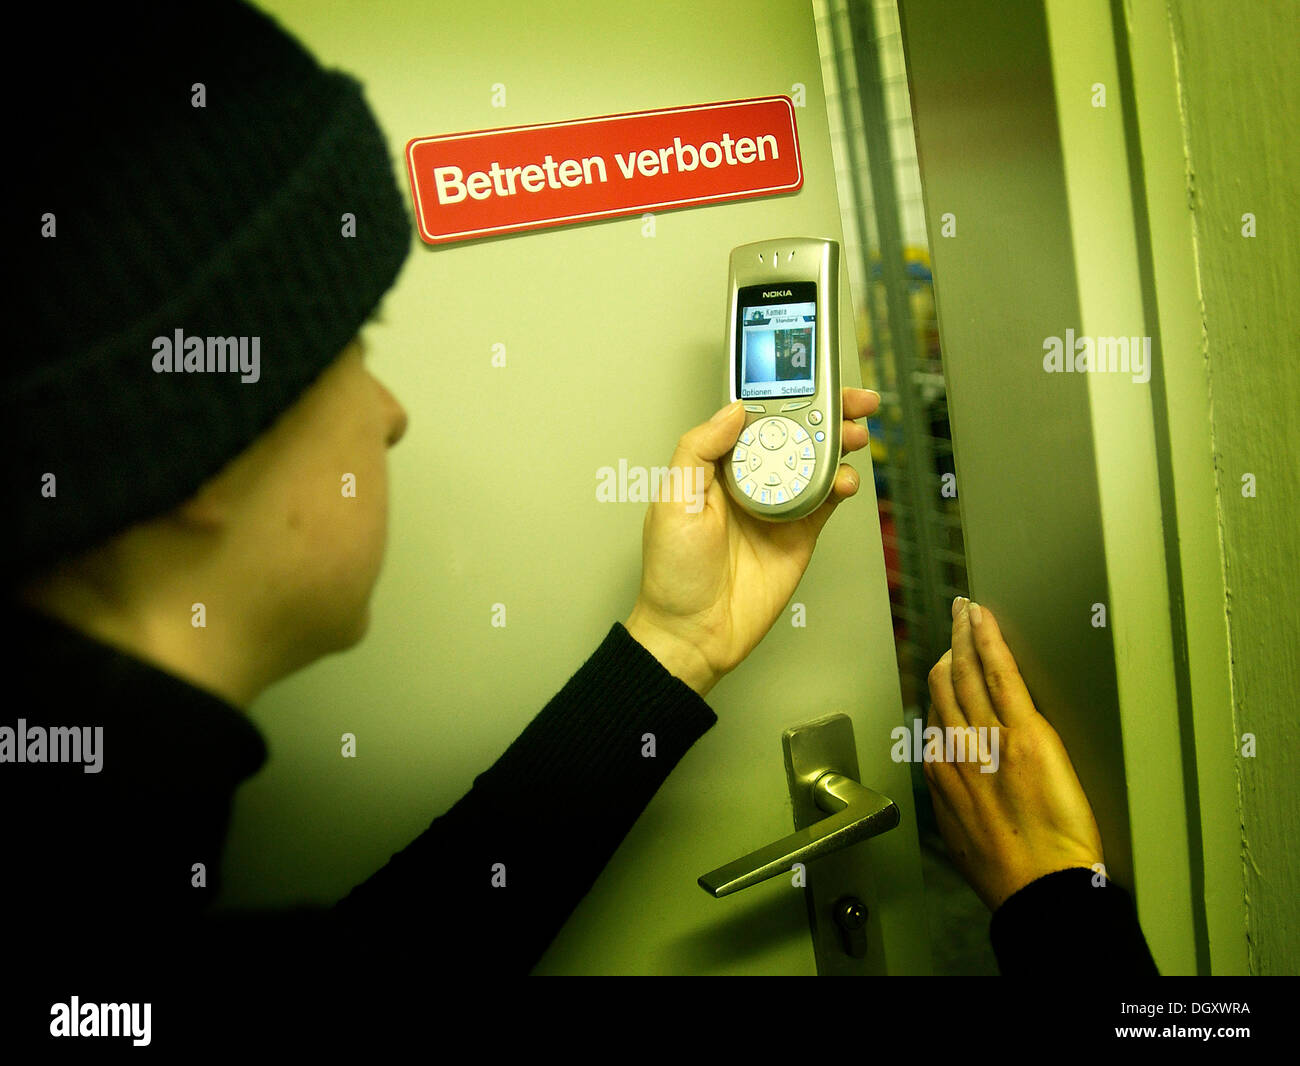 Burglar using a camera phone to take a photograph through the gap of a door, symbolic image for industrial espionage Stock Photo